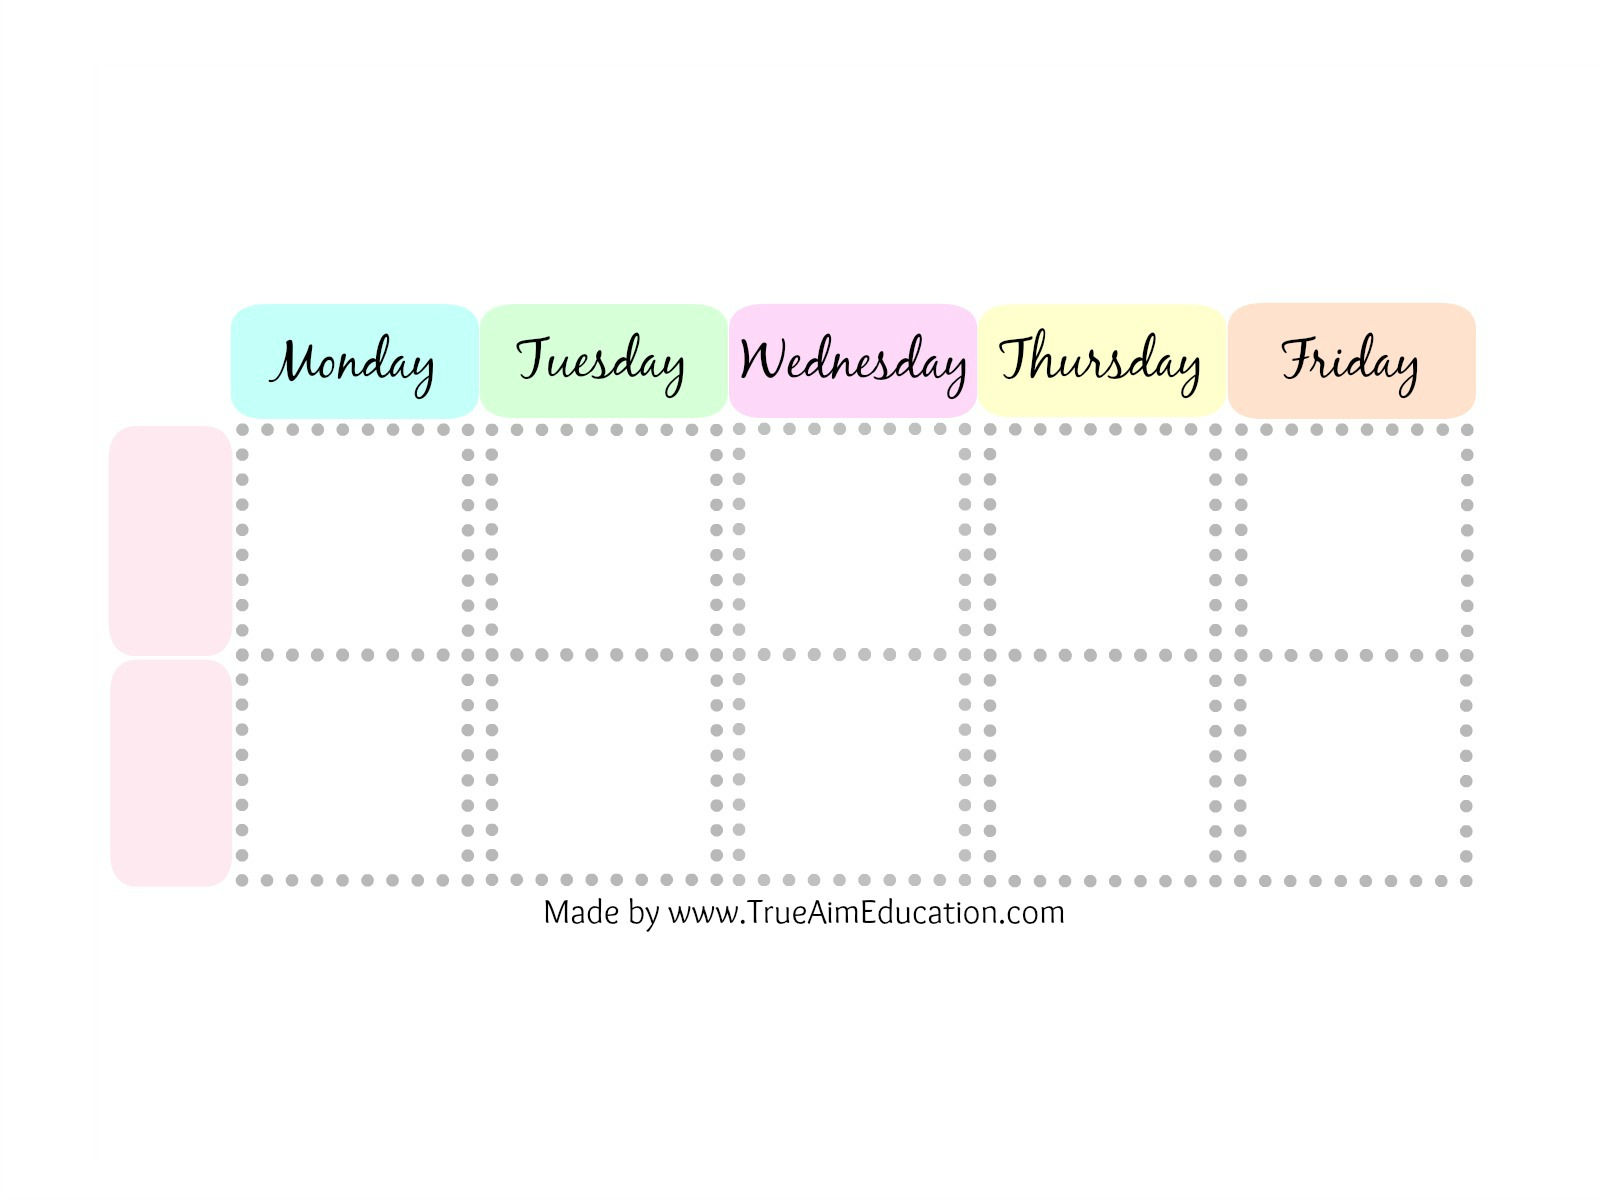 graphic relating to Week Planner Printable called Absolutely free Weekly Planner Printable Correct Concentration